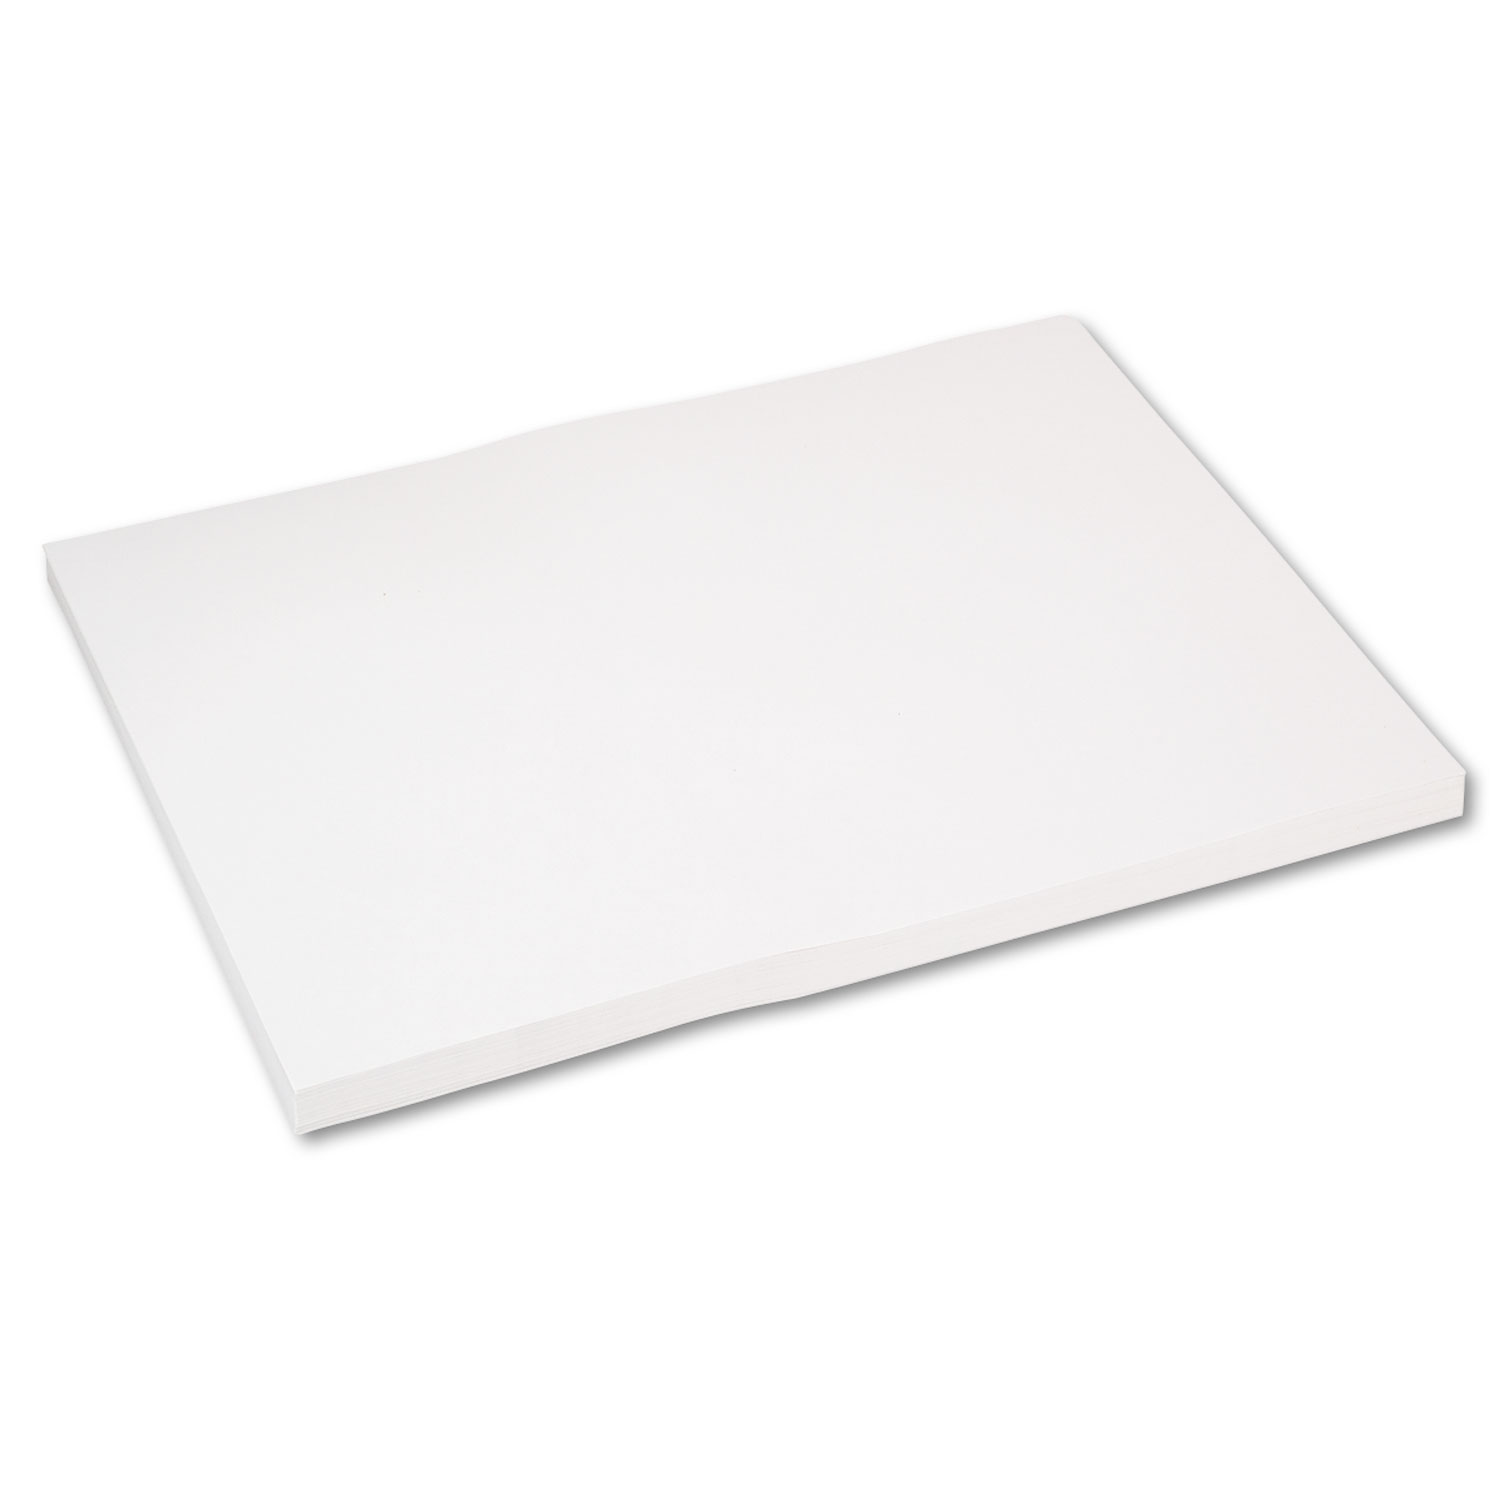 Medium Weight Tagboard, 24 x 18, White, 100/Pack